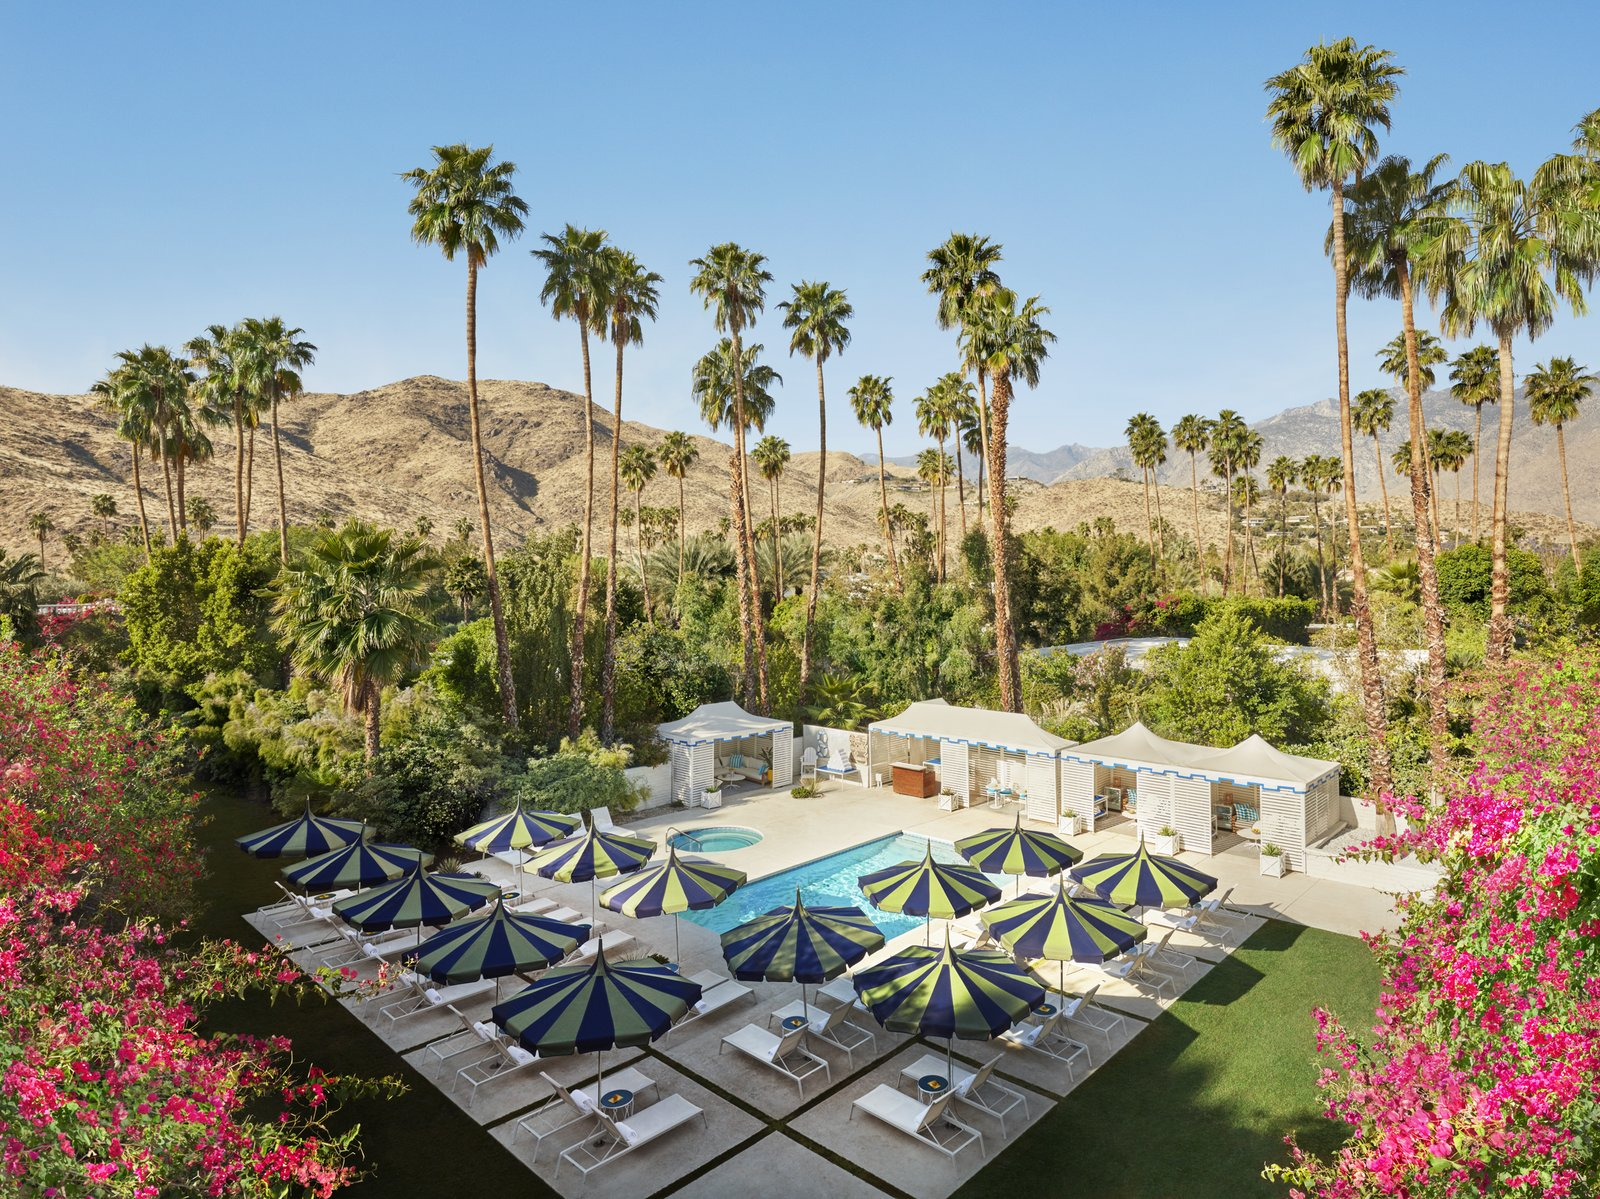 """Outdoor, Large Patio, Porch, Deck, Trees, Concrete Patio, Porch, Deck, Gardens, Walkways, Large Pools, Tubs, Shower, Pavers Patio, Porch, Deck, Flowers, Back Yard, and Desert """"Palm Springs is singular, and I wanted to create a hotel that captures its essence—groovy modern architecture meets Hollywood glamour—and crank it up a notch,"""" Jonathan Adler said of his design at the Parker Palm Springs.   Parker Palm Springs from Jonathan Adler Reveals His Redesign of the Parker Palm Springs"""